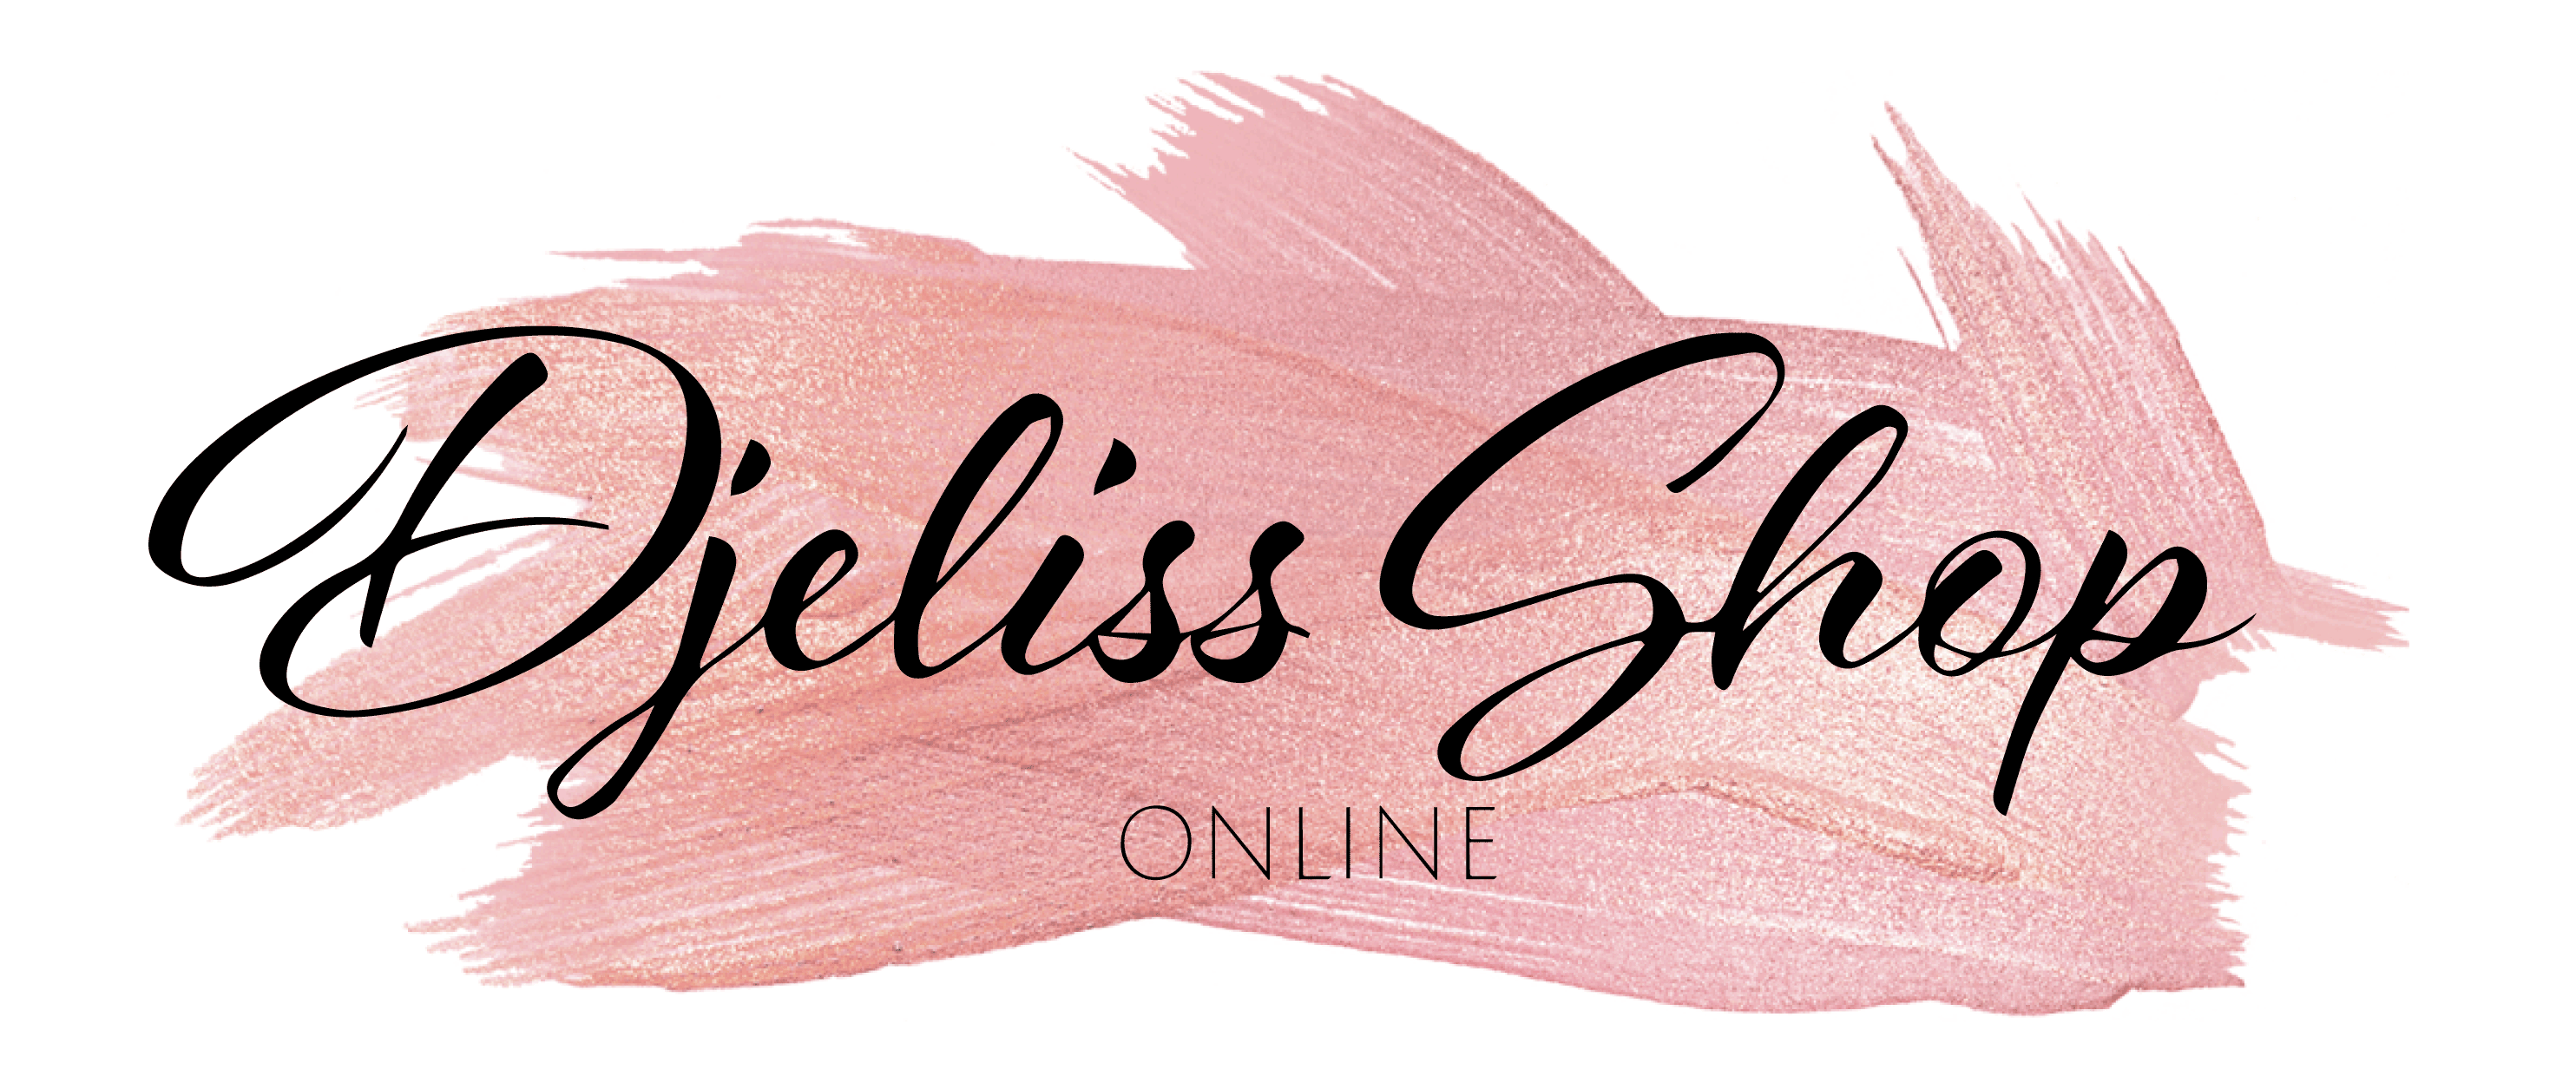 Dejliss Shop